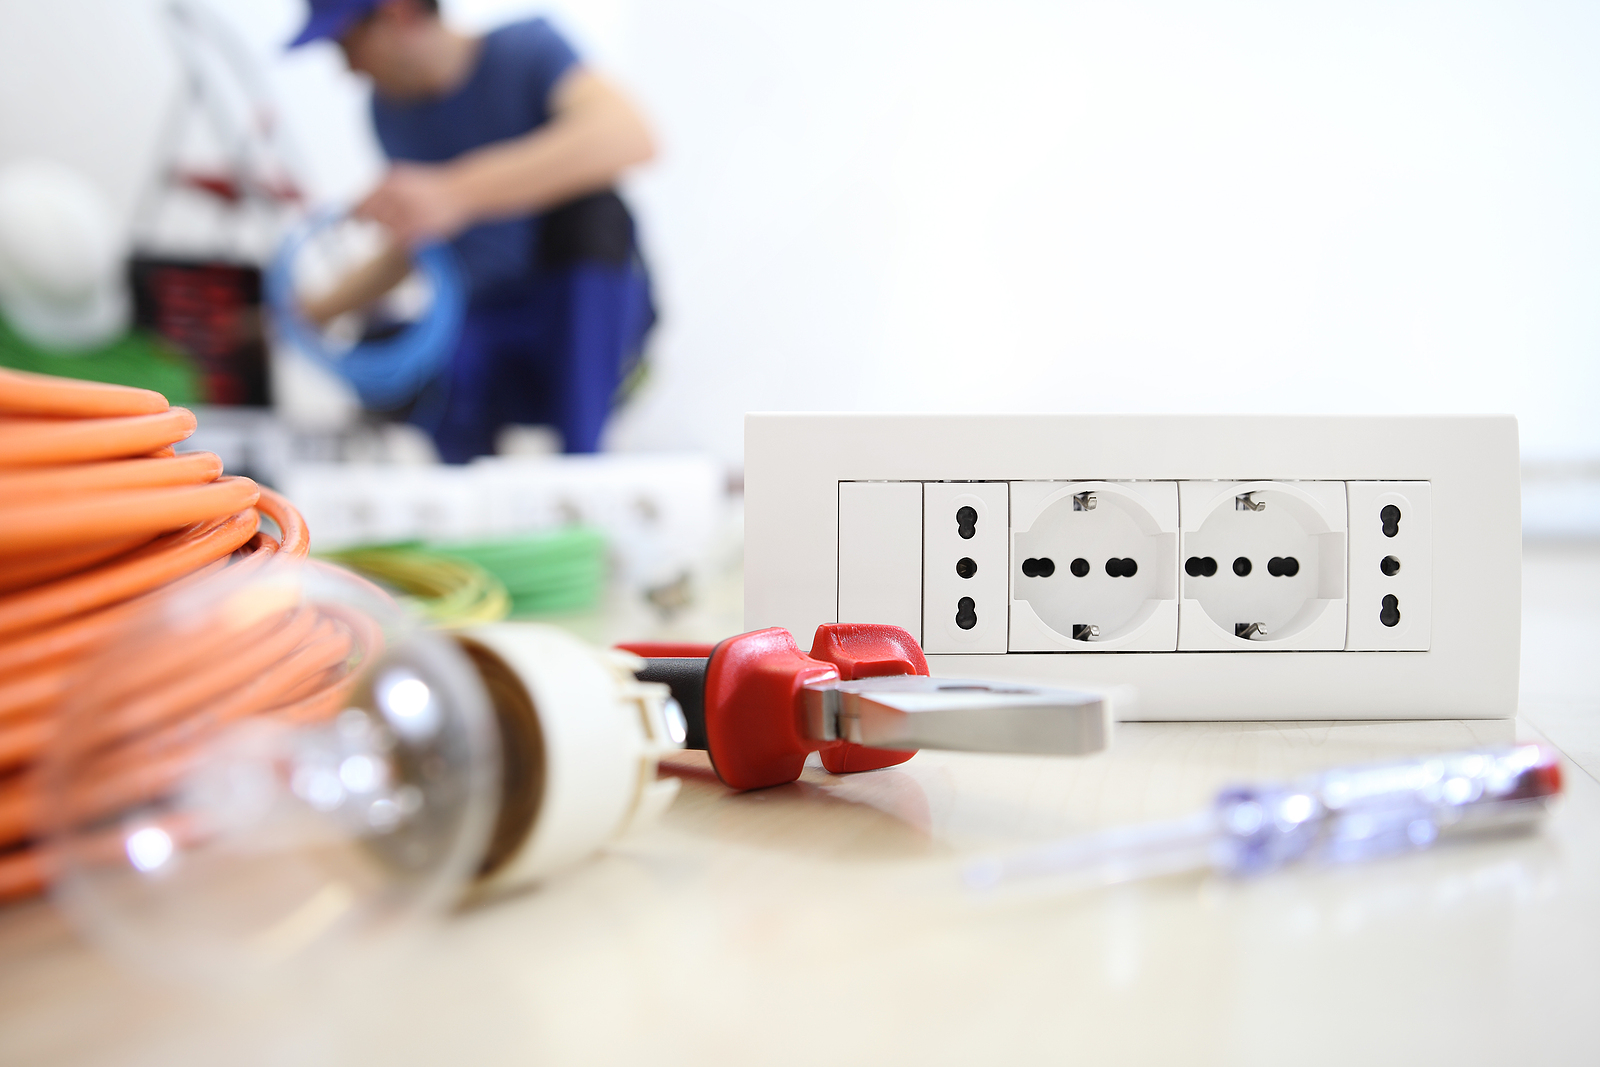 Electrician with electrical supplies in the floor